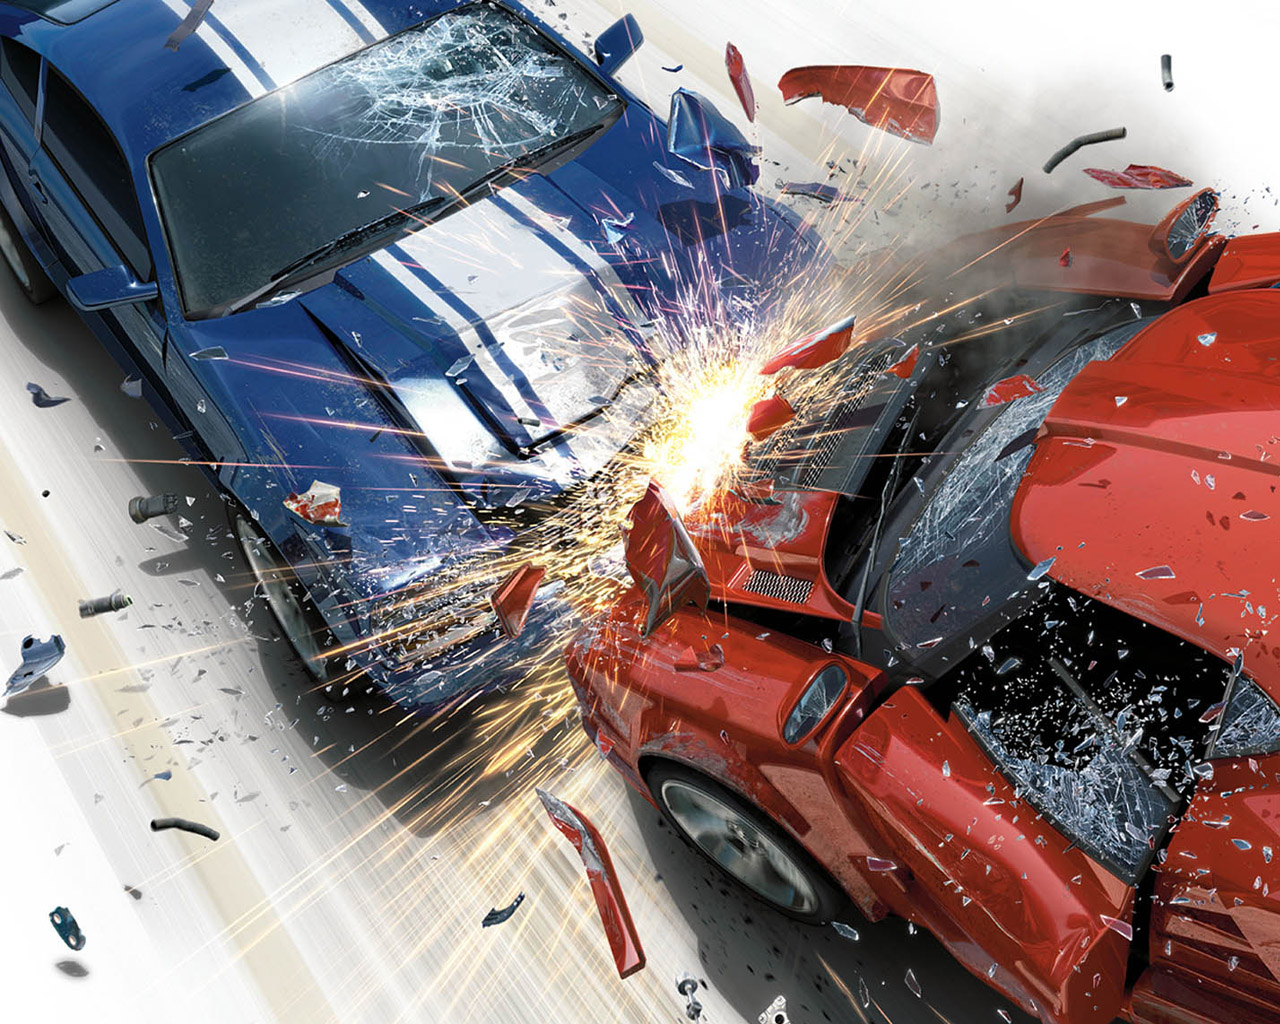 HOW TO SURVIVE CAR ACCIDENTS